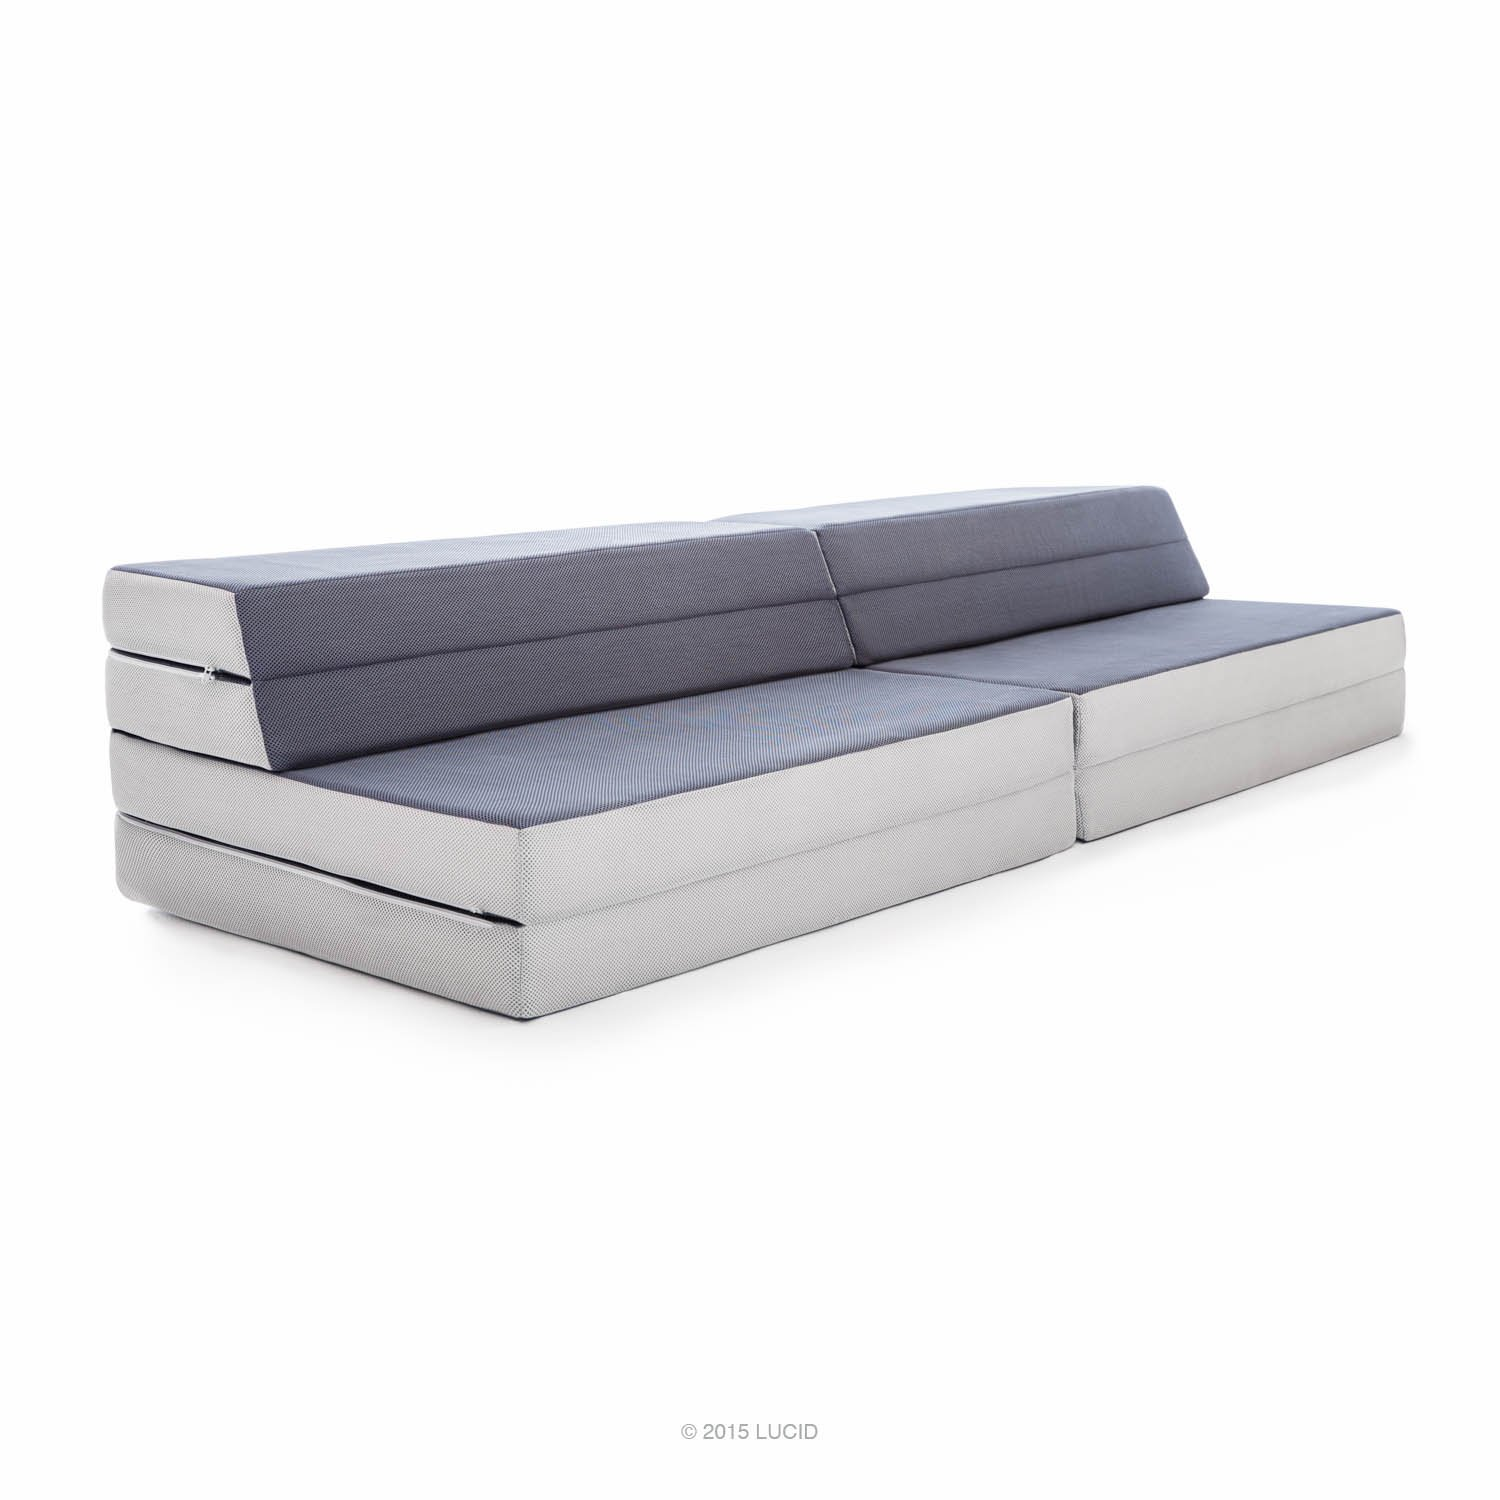 Amazoncom LUCID King Twin XL Convertible Folding Foam Mattress - Mattress for sofa bed